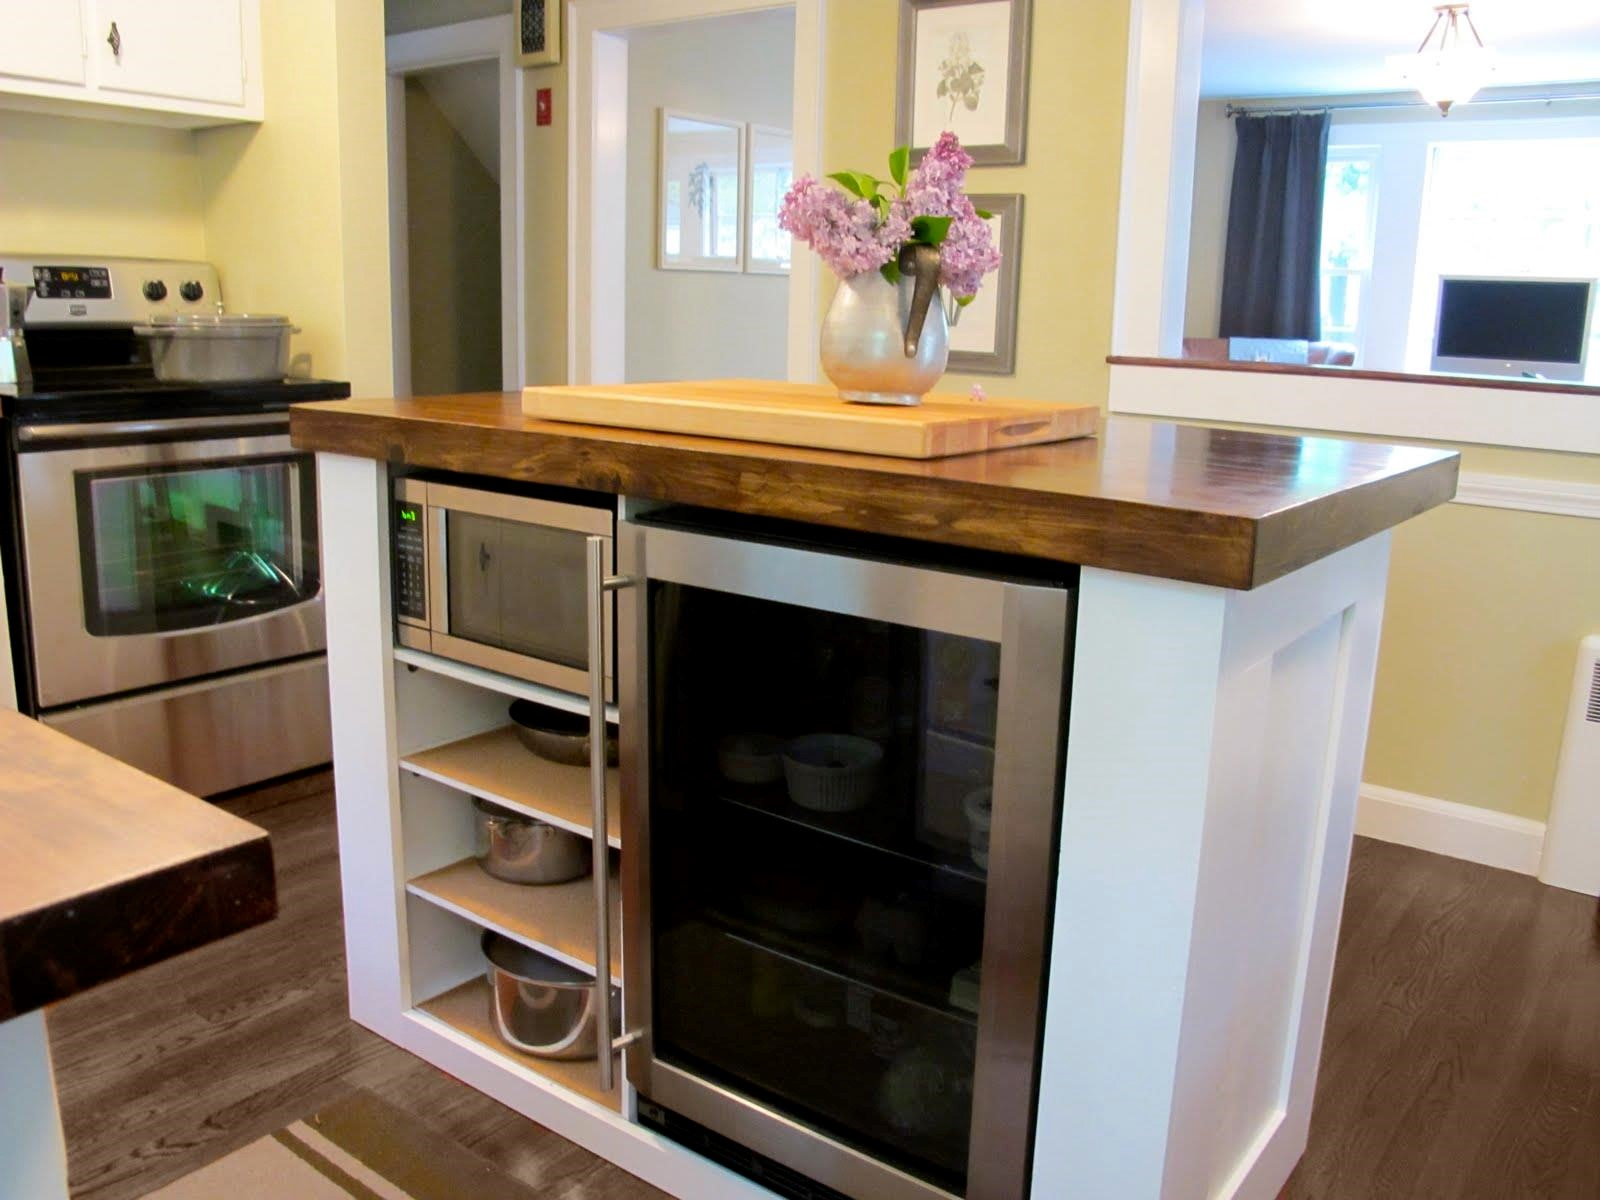 Splendid Small Kitchen Storage Cabinets That Can Be Useful